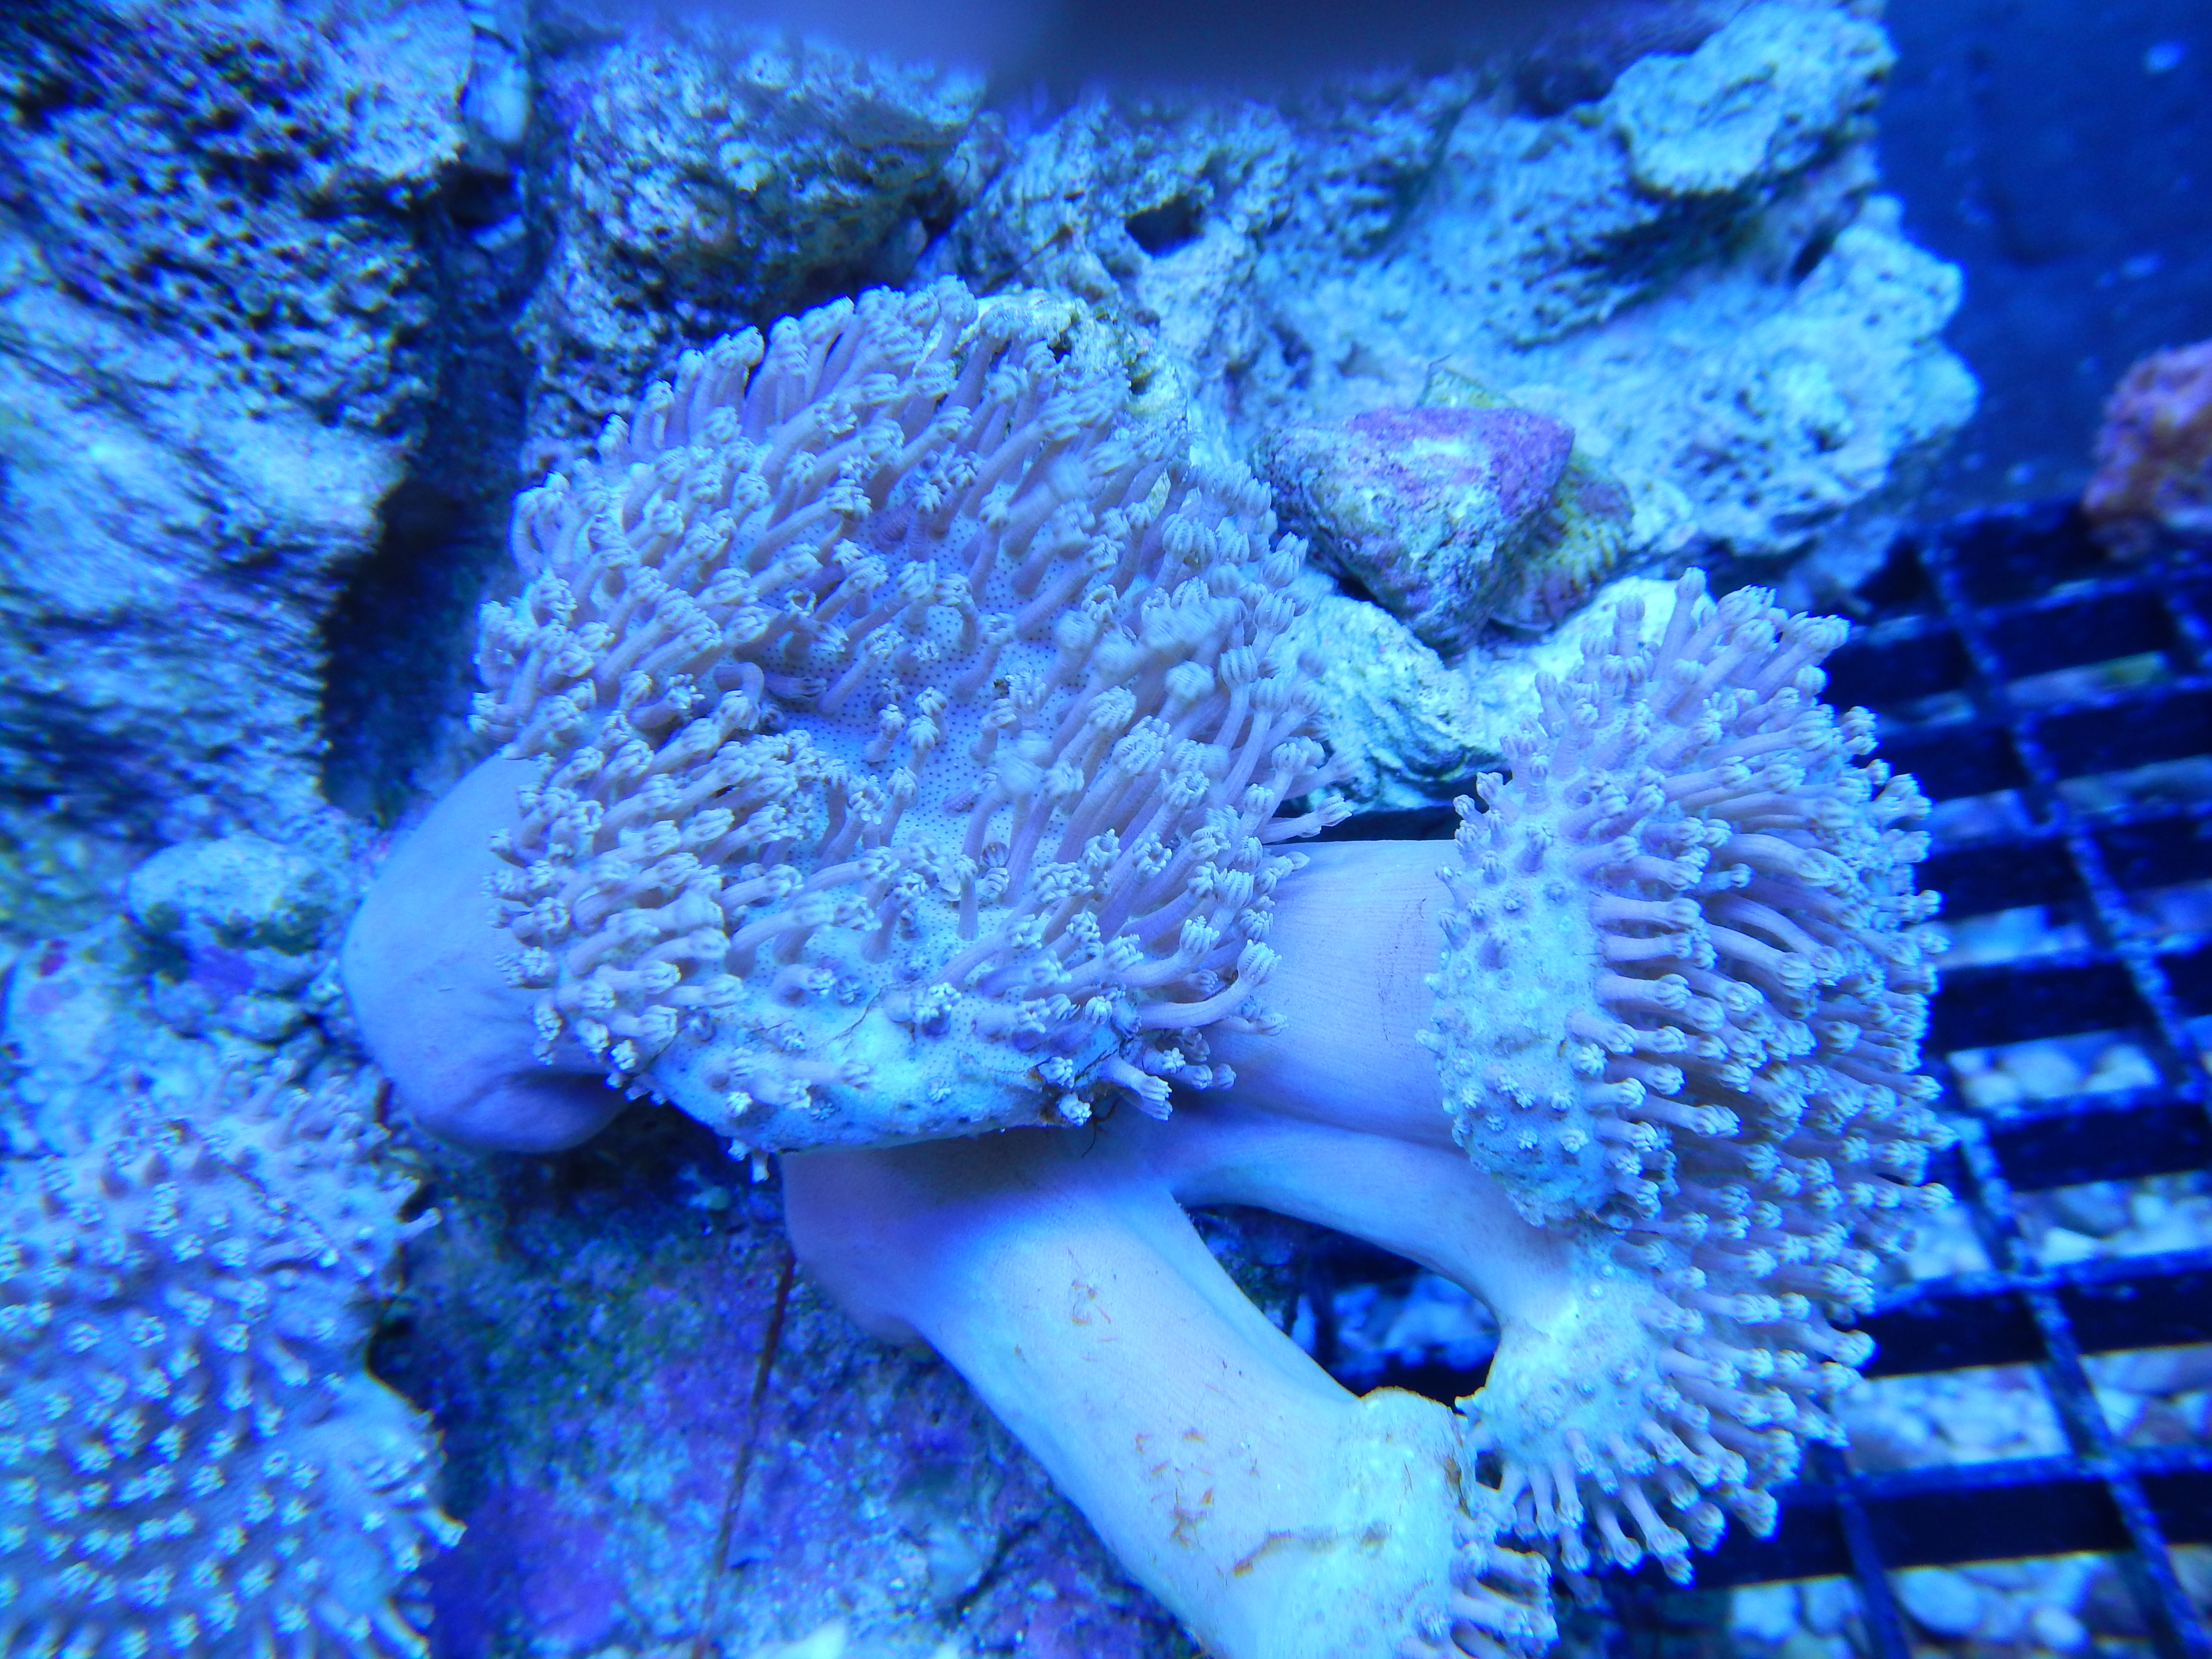 Pin Sps Lps Soft Corals Mushrooms on Pinterest